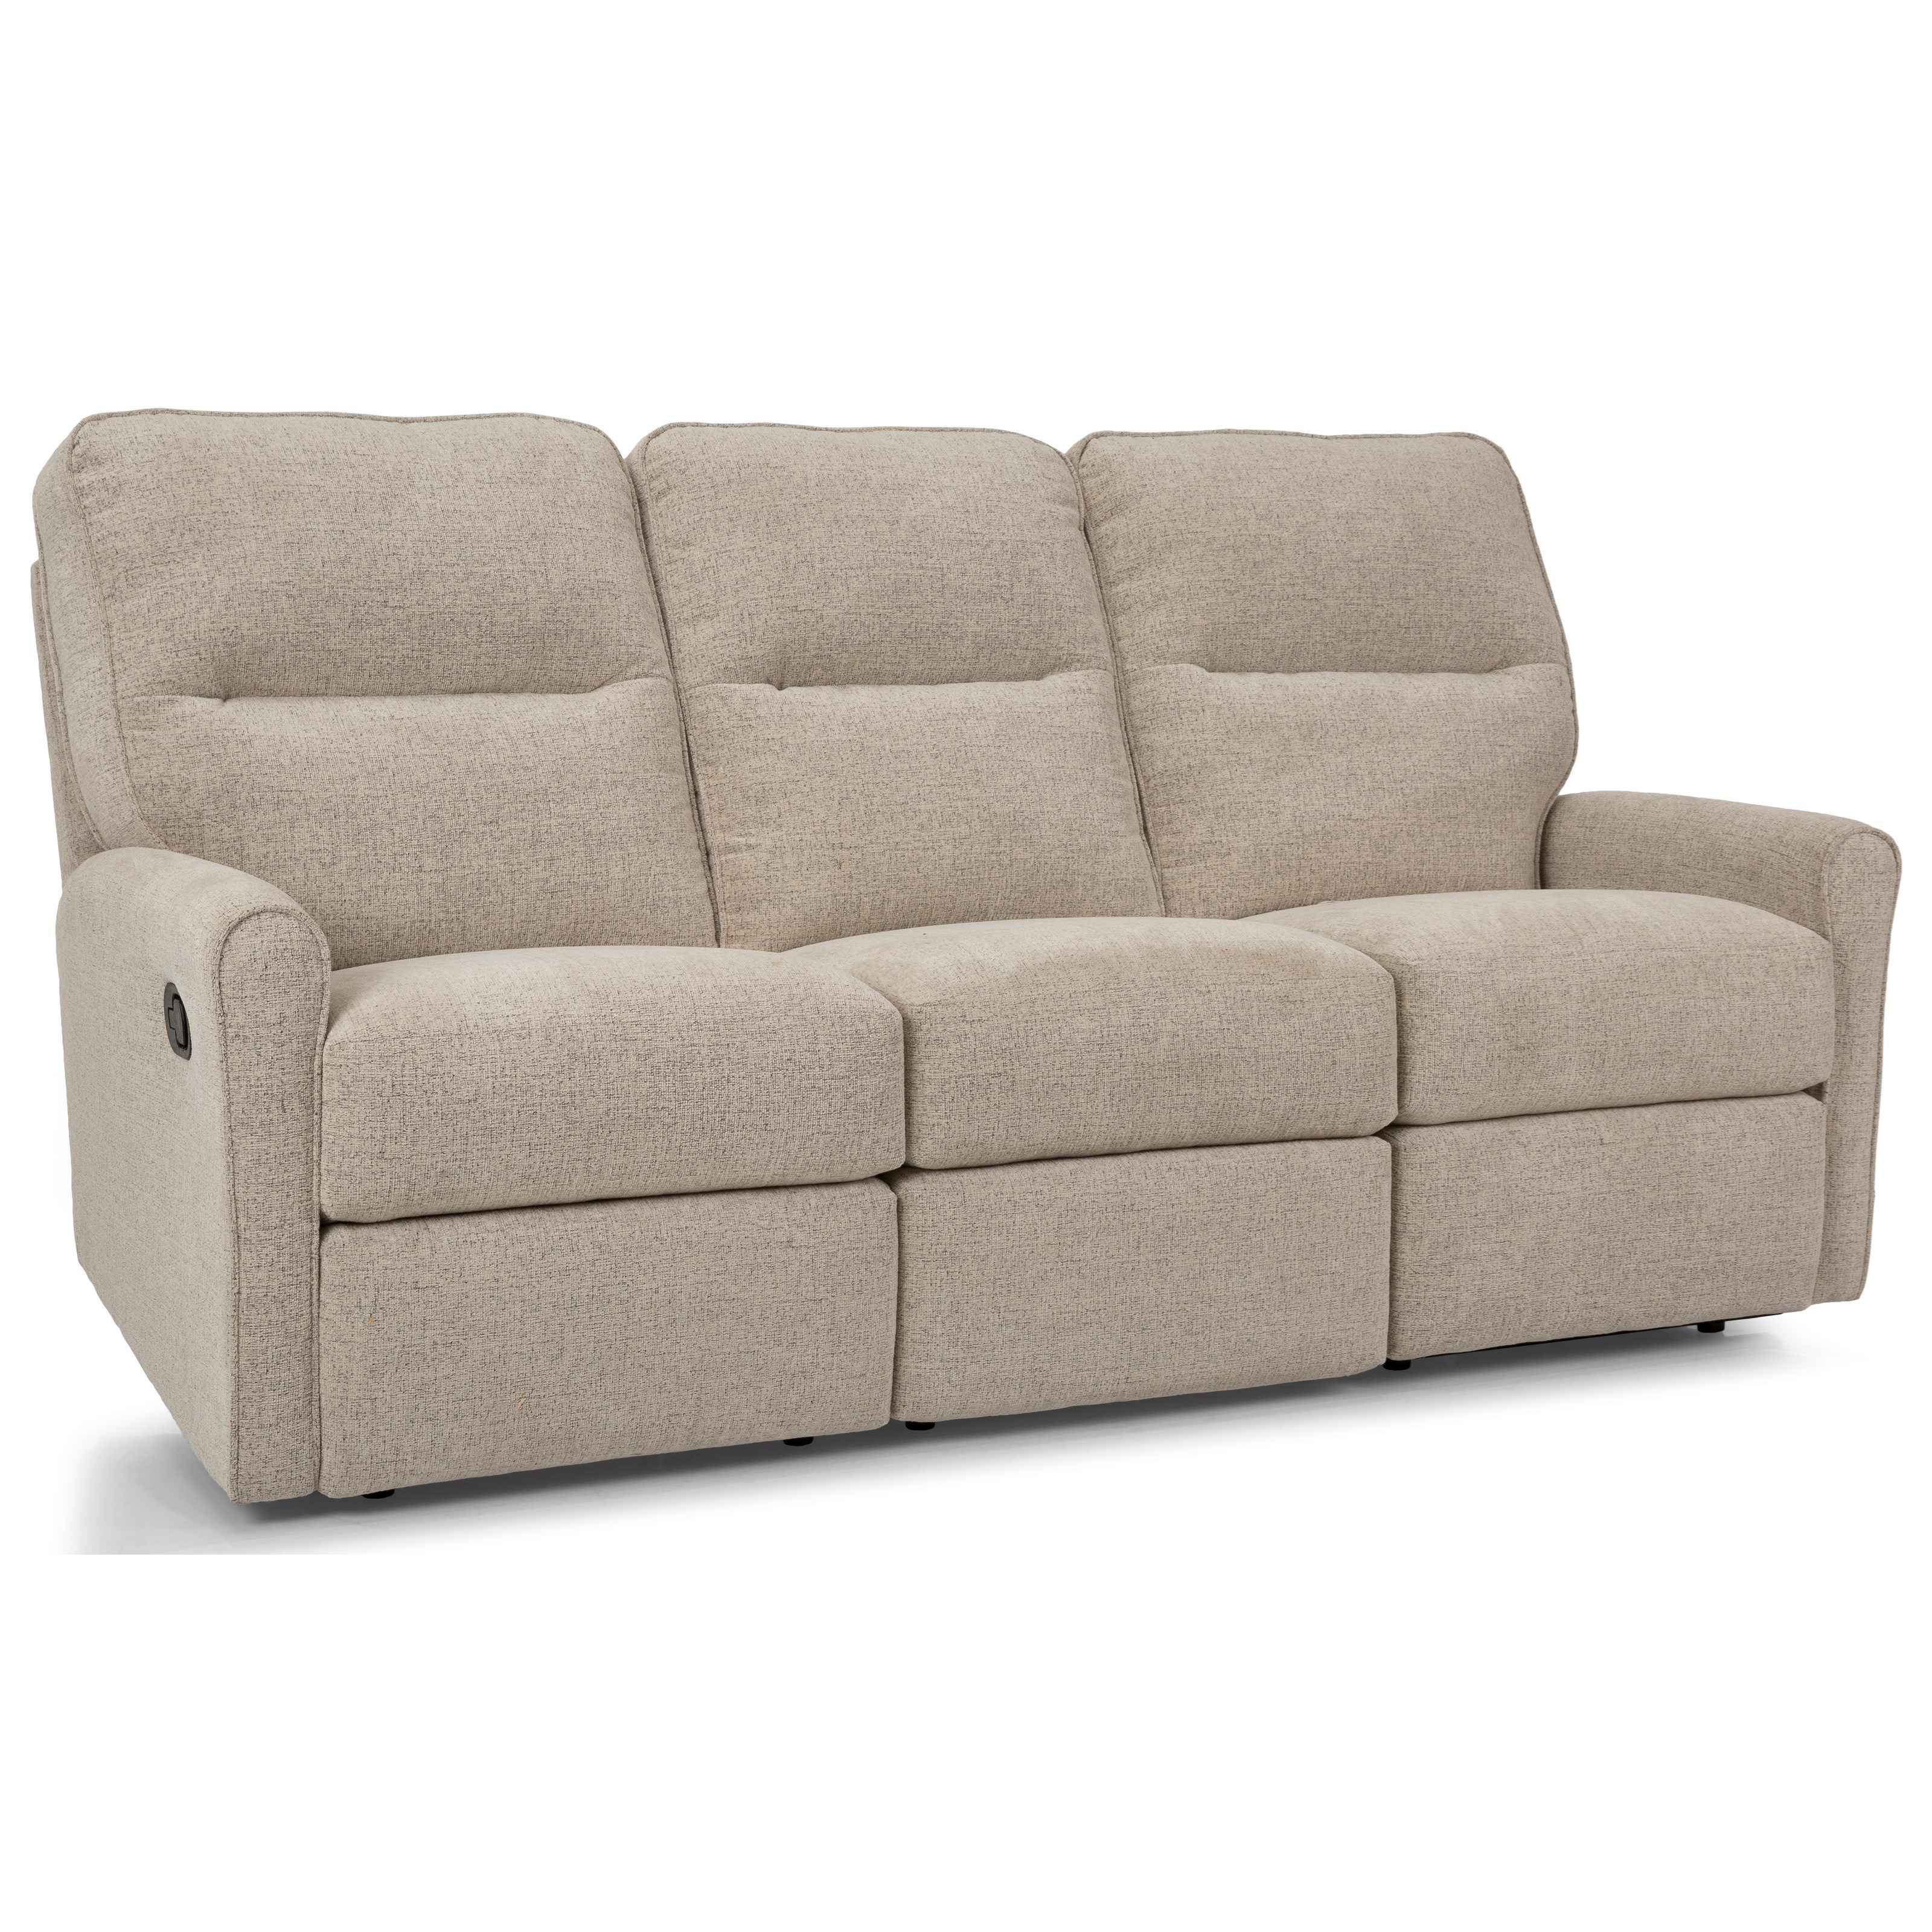 M846 Reclining Sofa by Decor-Rest at Stoney Creek Furniture